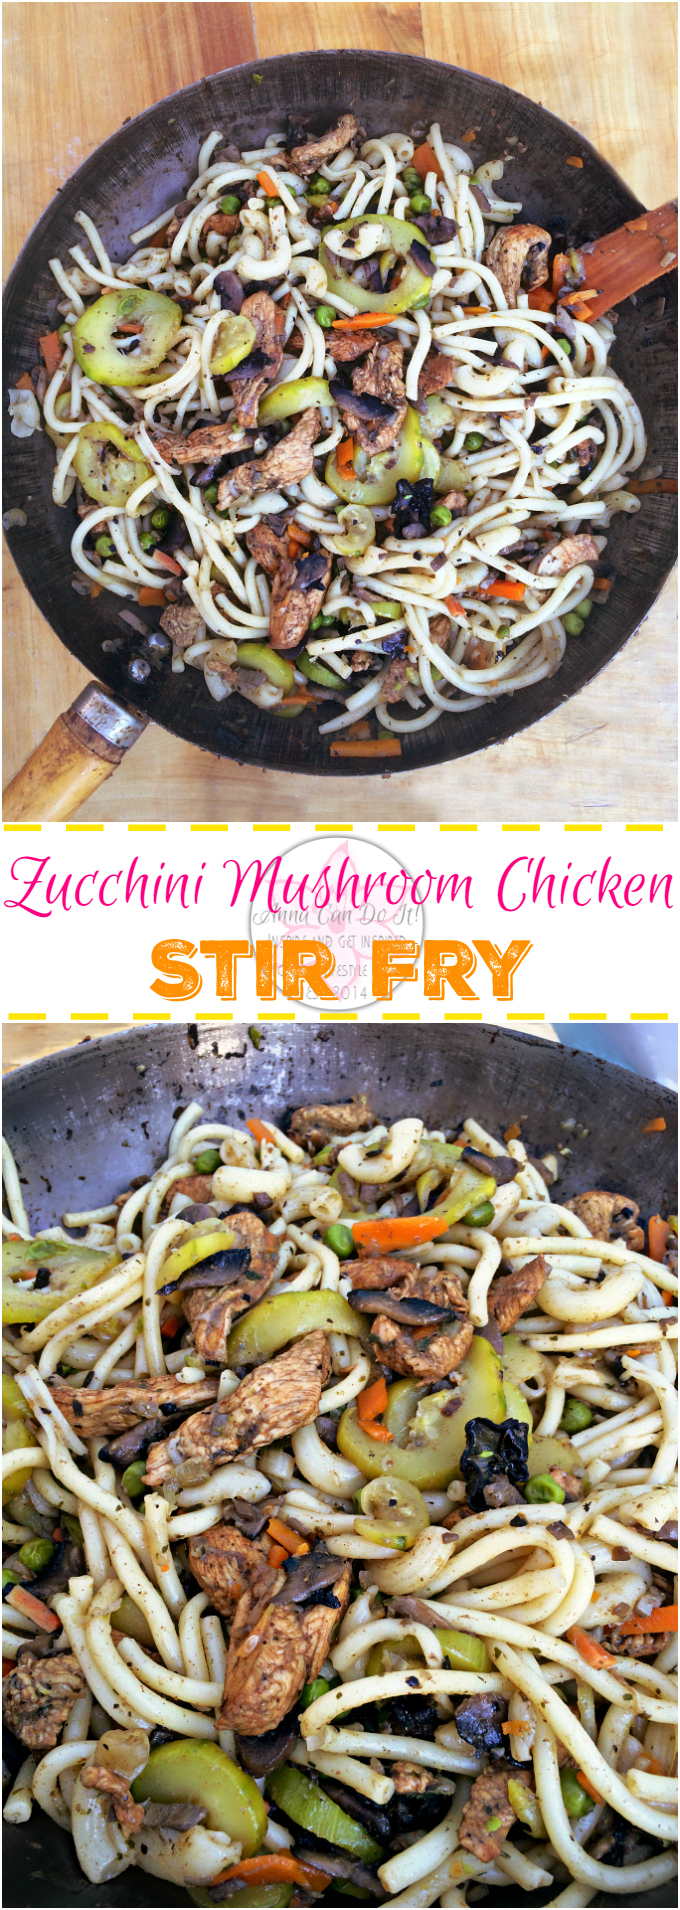 Zucchini Mushroom Chicken Stir Fry - Anna Can Do It! * Zucchini Mushroom Chicken Stir Fry is just perfect, full of veggies (zucchini, mushroom, carrot, pea and onion), spicy and very tasty! Quick and simple dinner and lunch recipe.